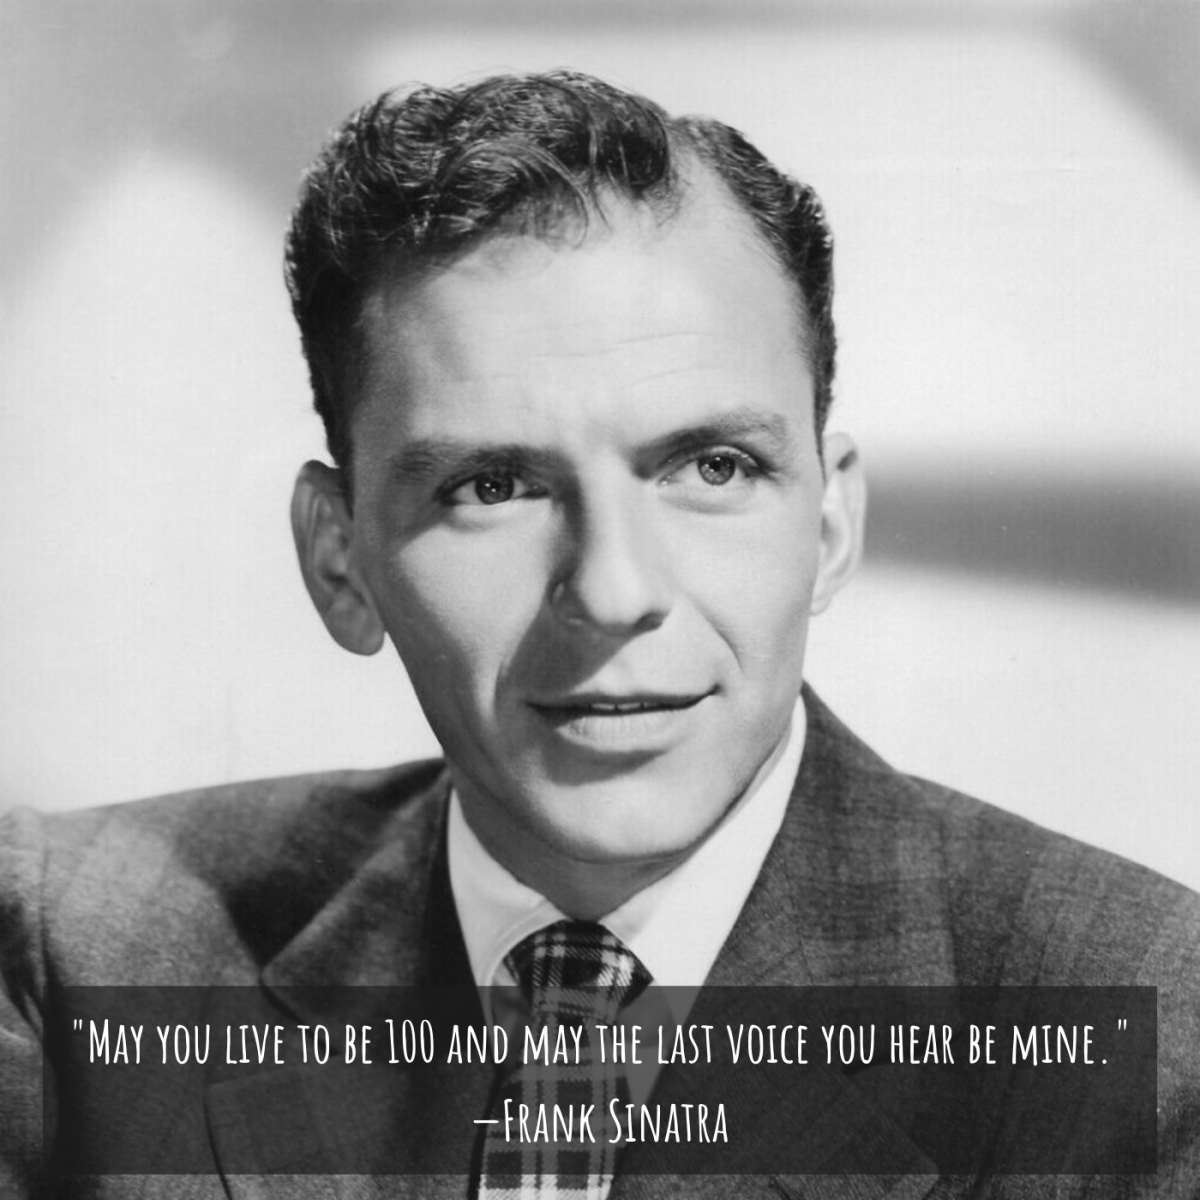 """May you live to be 100 and may the last voice you hear be mine."" —Frank Sinatra"